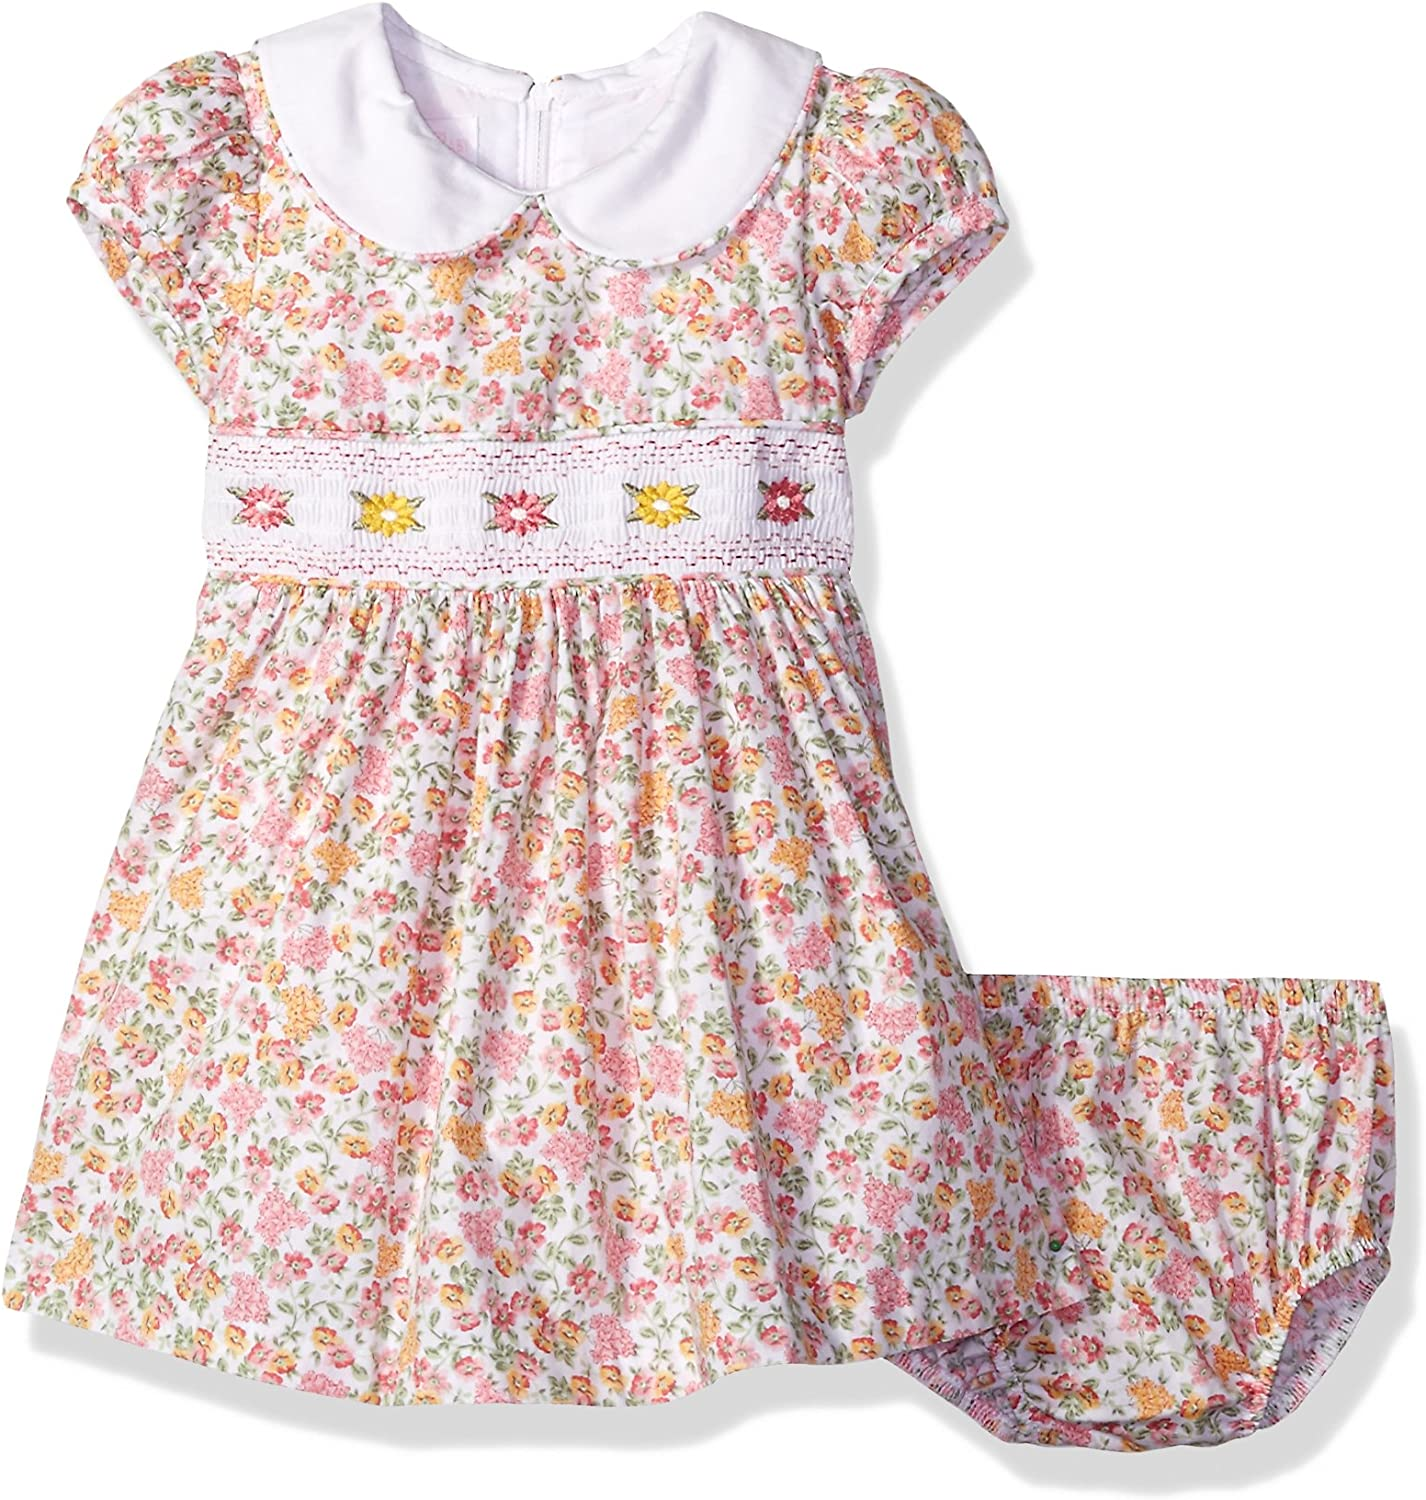 Bonnie Baby Baby Girls Smocked Waist Dress with Panty Casual